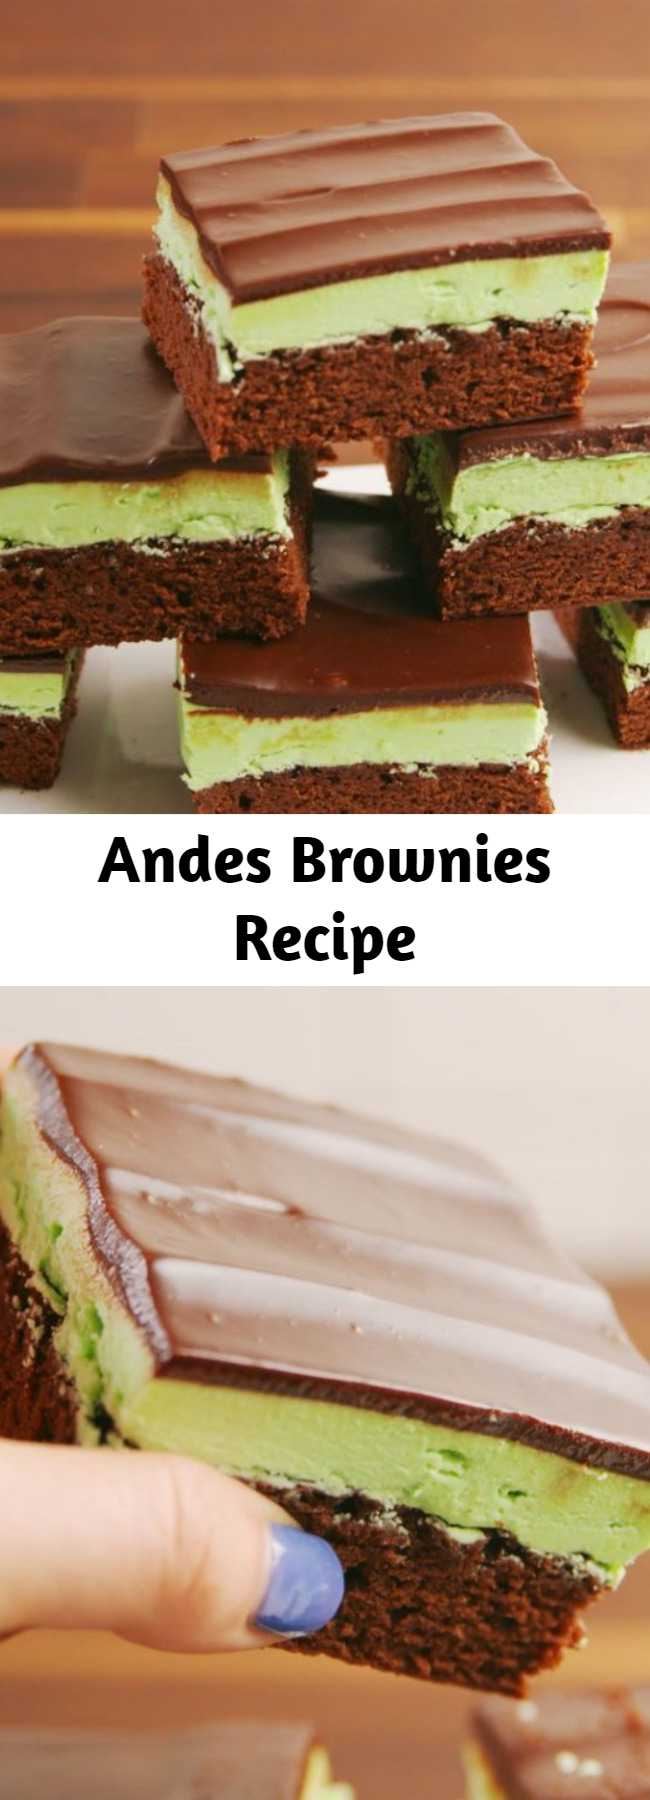 Andes Brownies Recipe - A brownie that looks and tastes like Andes Mints are a dream come true. A decadent brownie for the avid mint and chocolate lover.